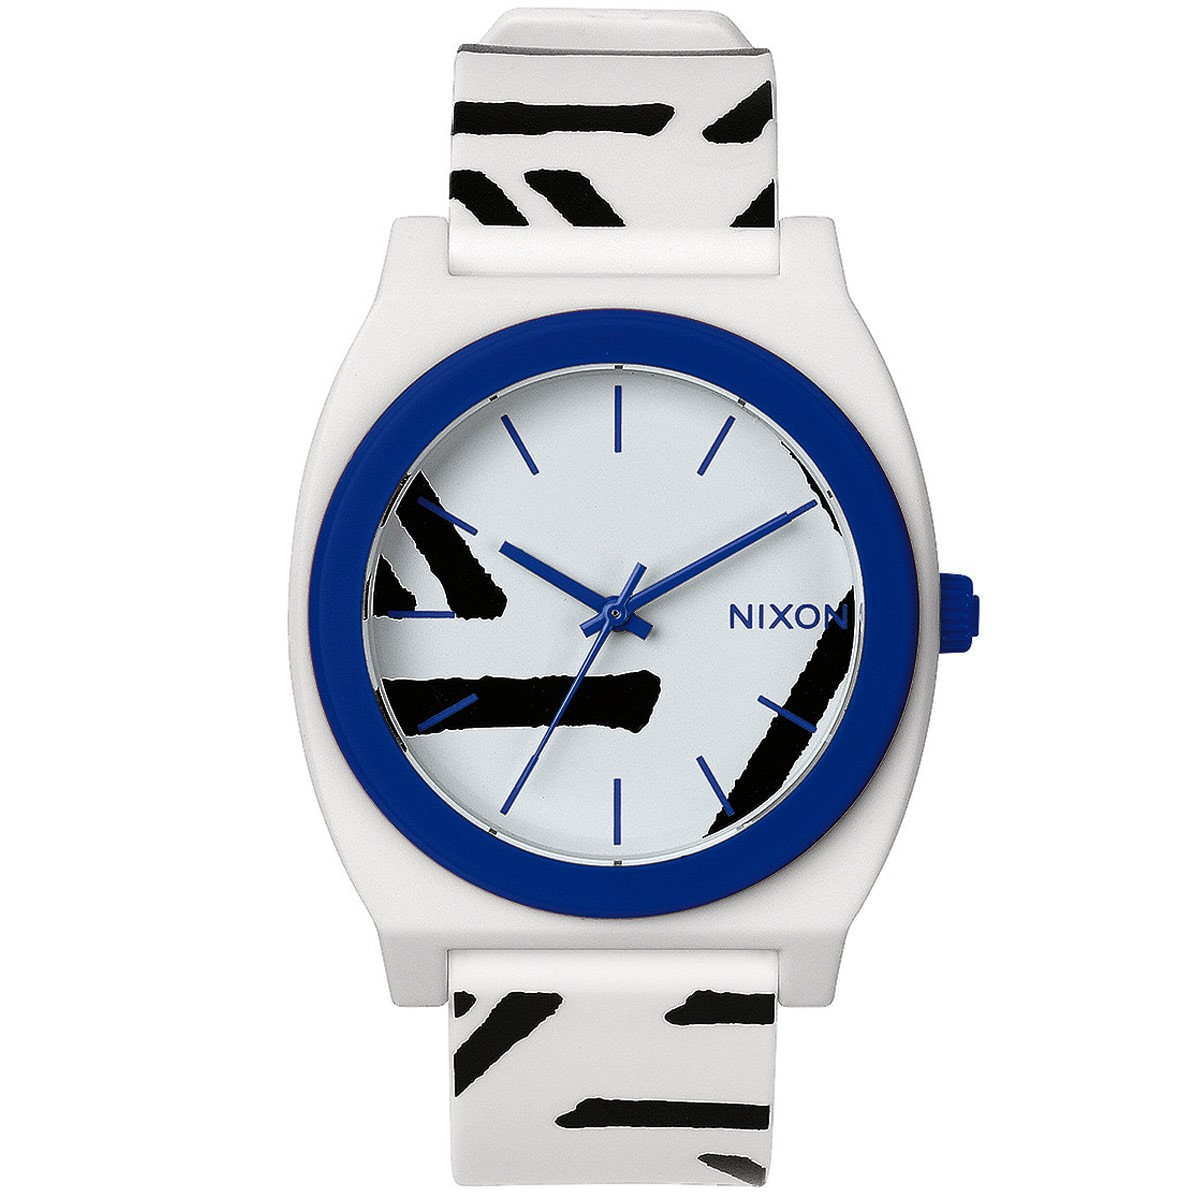 Nixon Time Teller P Watch - White/Cobalt